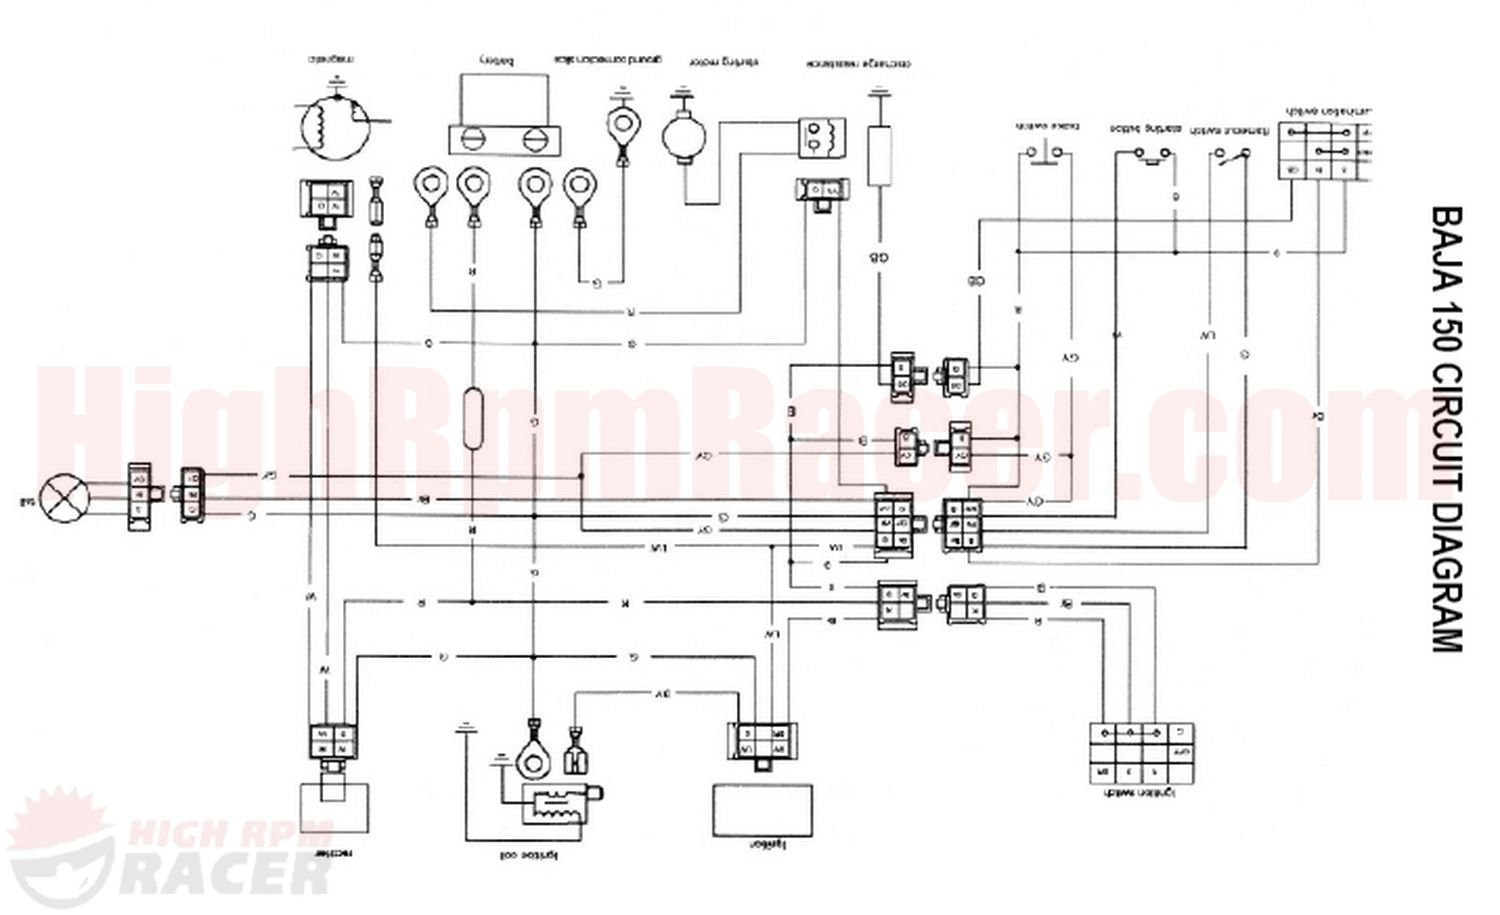 chinese 50cc 4 wheeler wire diagram with 90cc Atv Wiring Diagram on Aeon Quad Wiring Diagram moreover TuningTips furthermore E Lektricheskaya Shema Kitajskogo Skut likewise 90cc Atv Wiring Diagram likewise China 4 Wheeler Wiring Diagram.